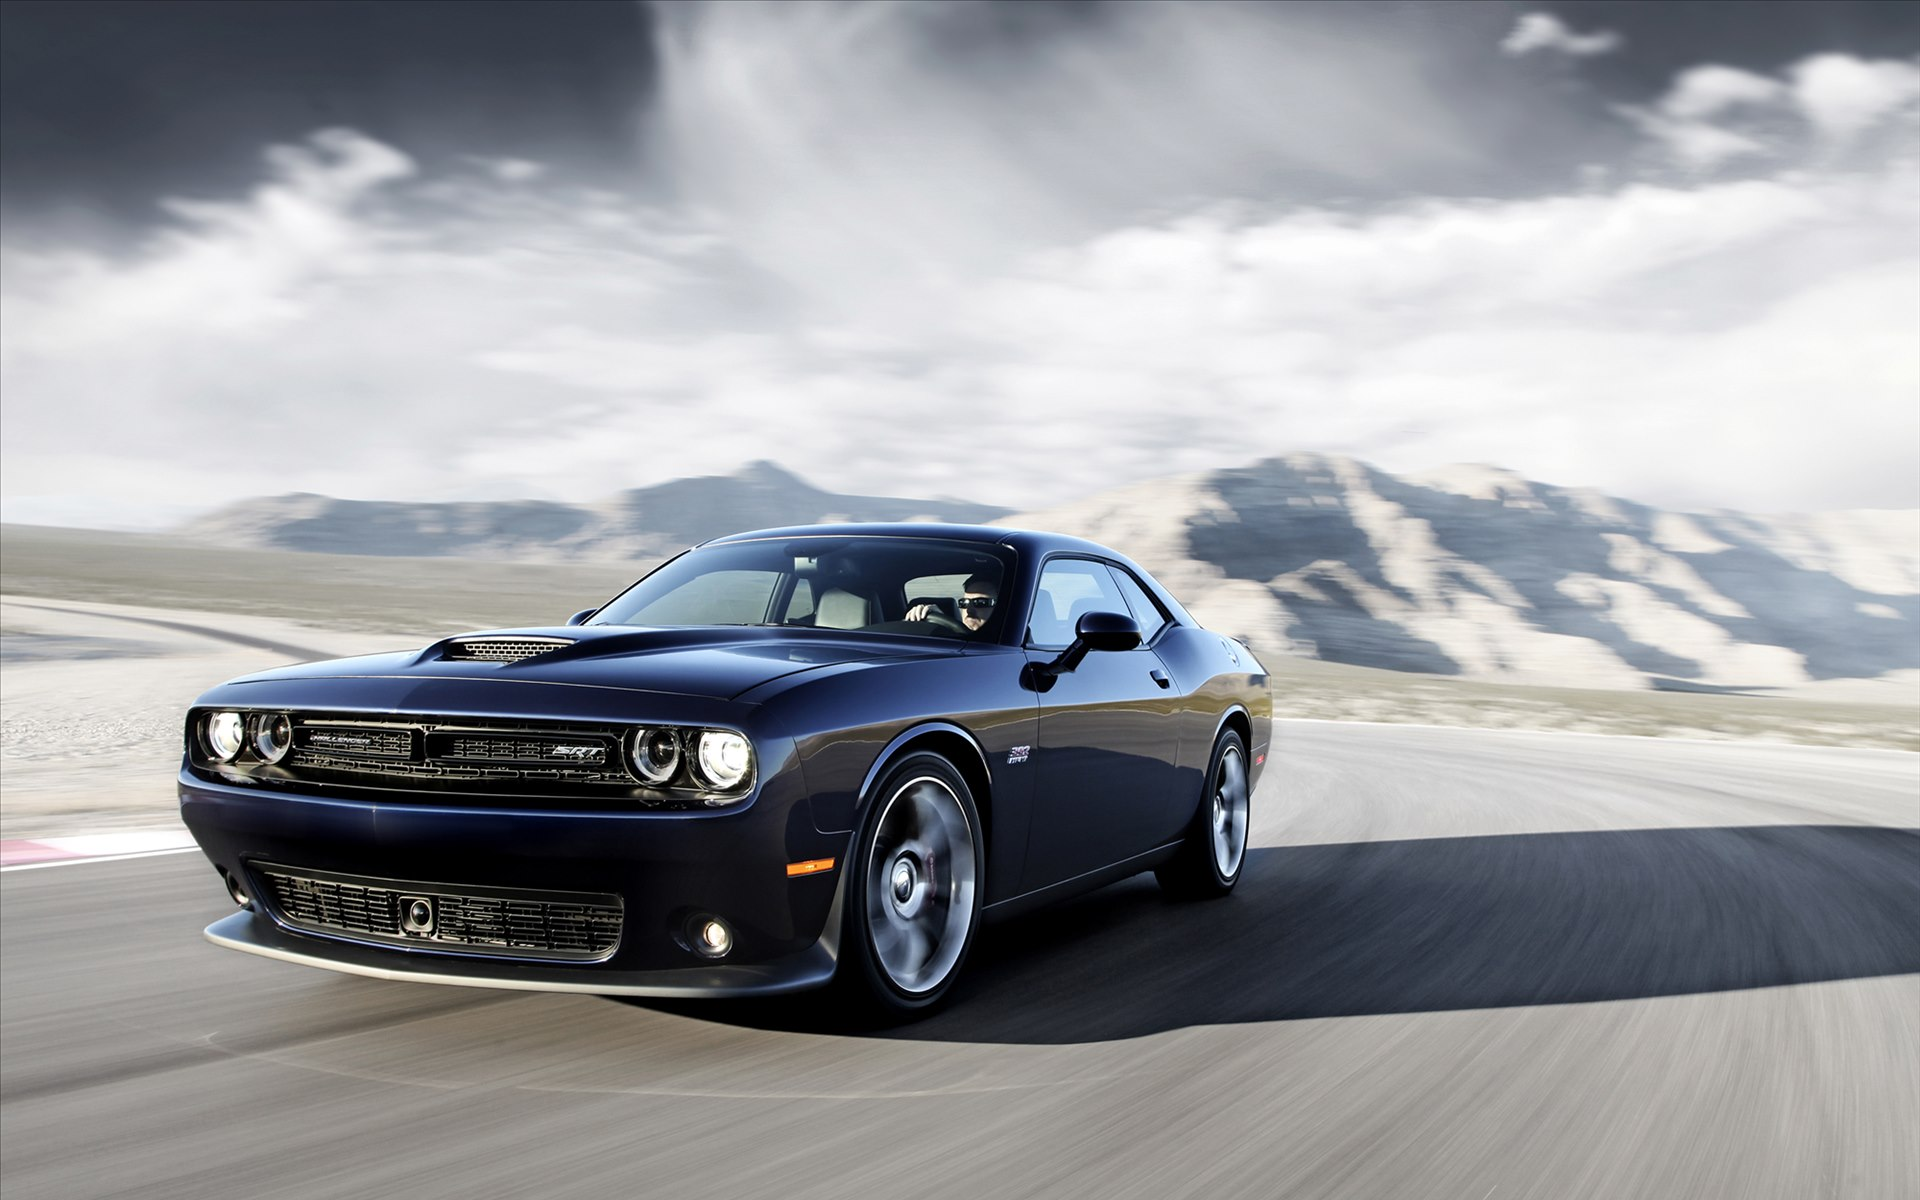 2015 dodge challenger srt 3 wallpaper hd car wallpapers id 4457. Black Bedroom Furniture Sets. Home Design Ideas